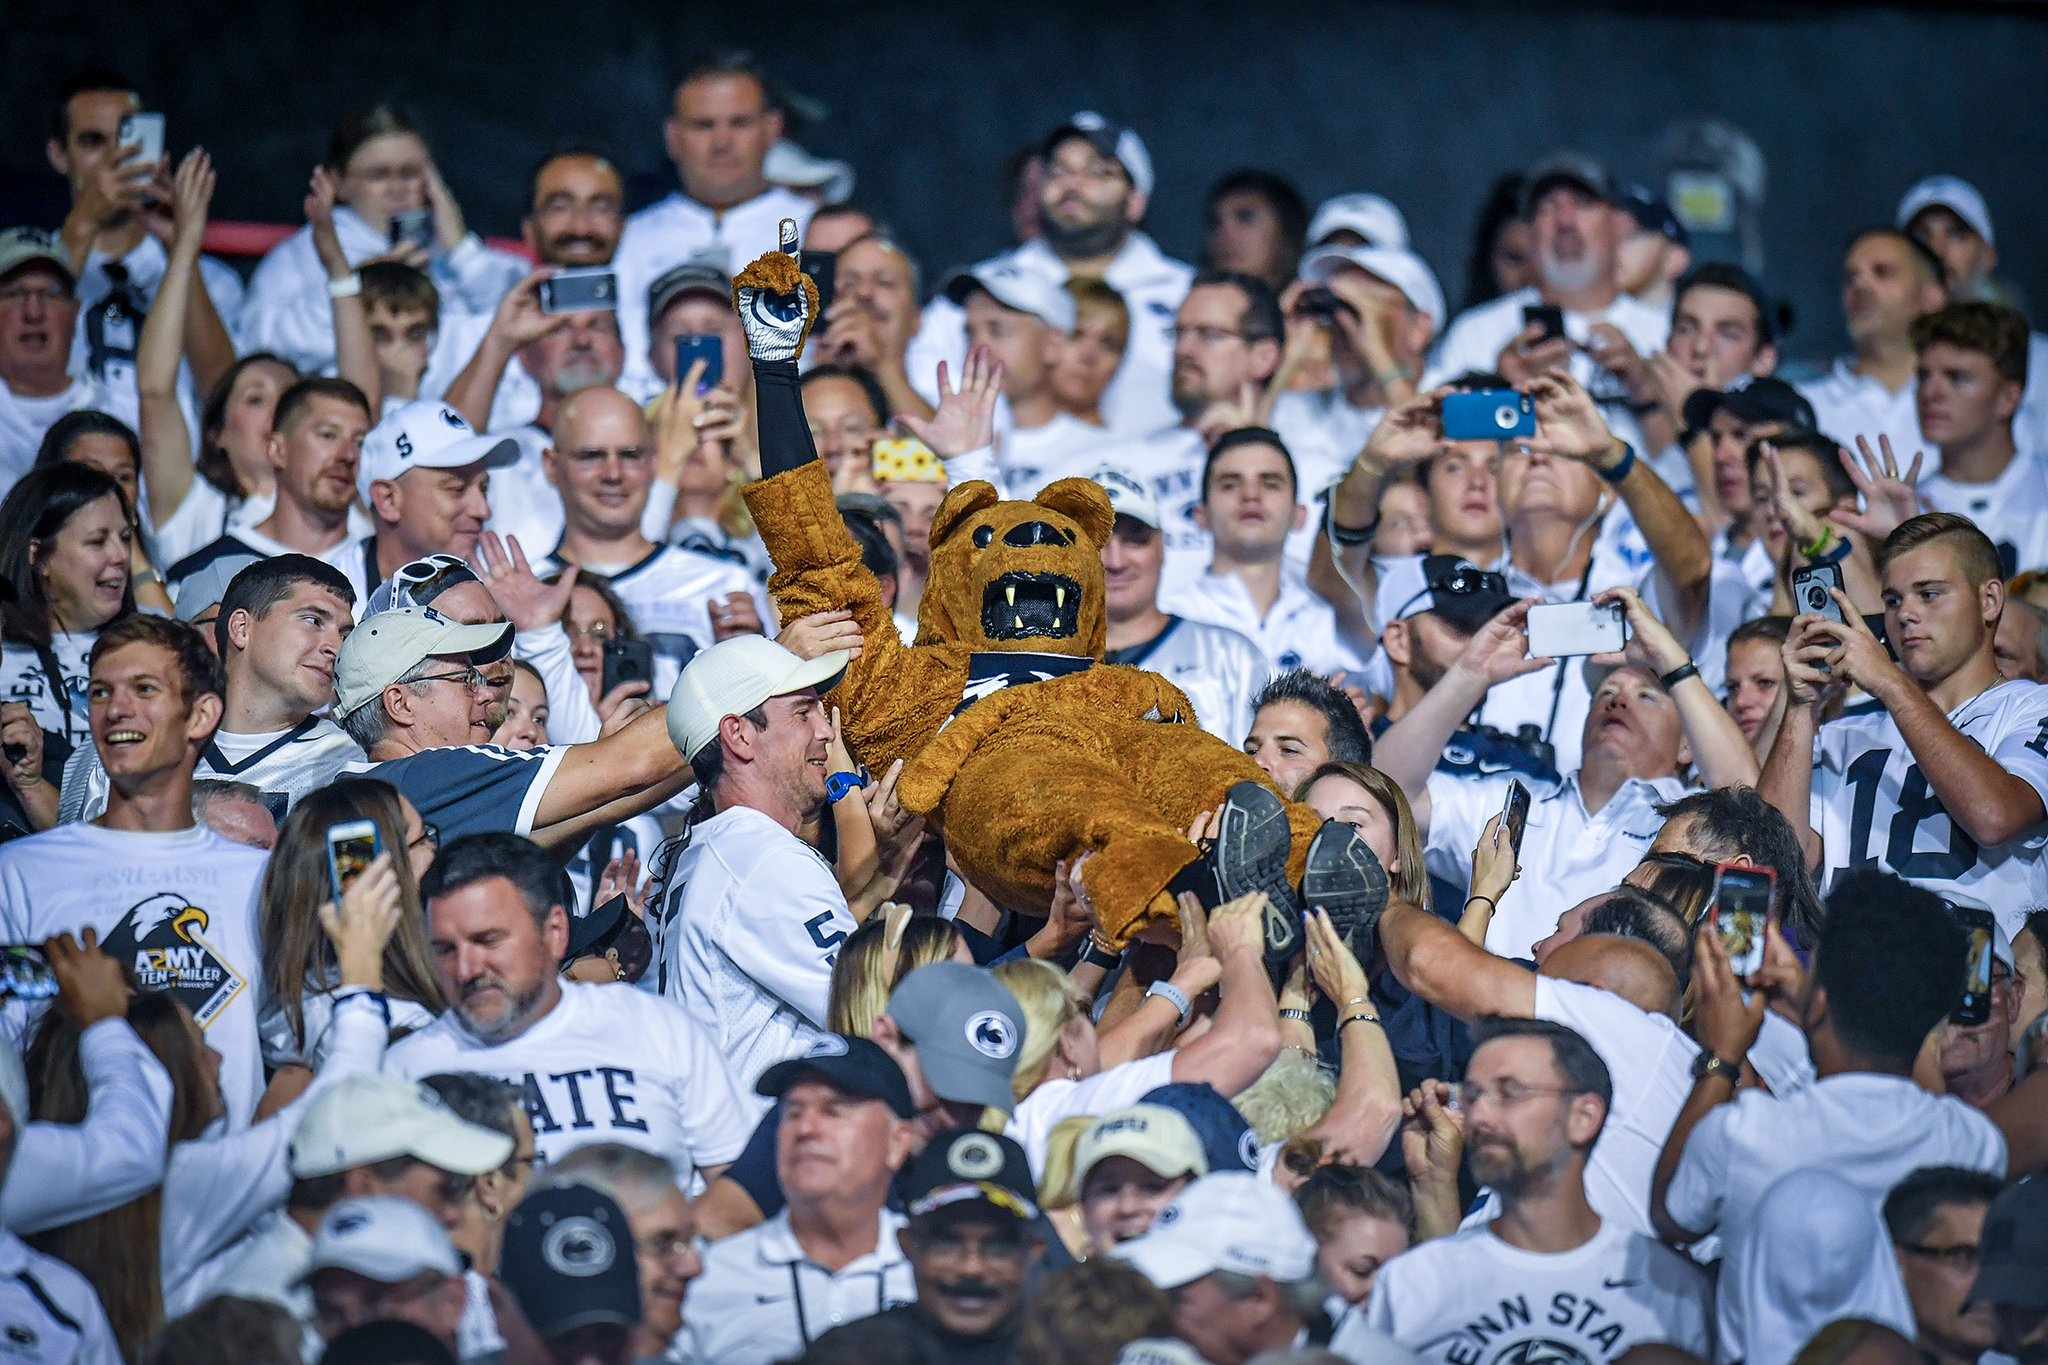 Nittany Lions Dominate In Big Ten Opener